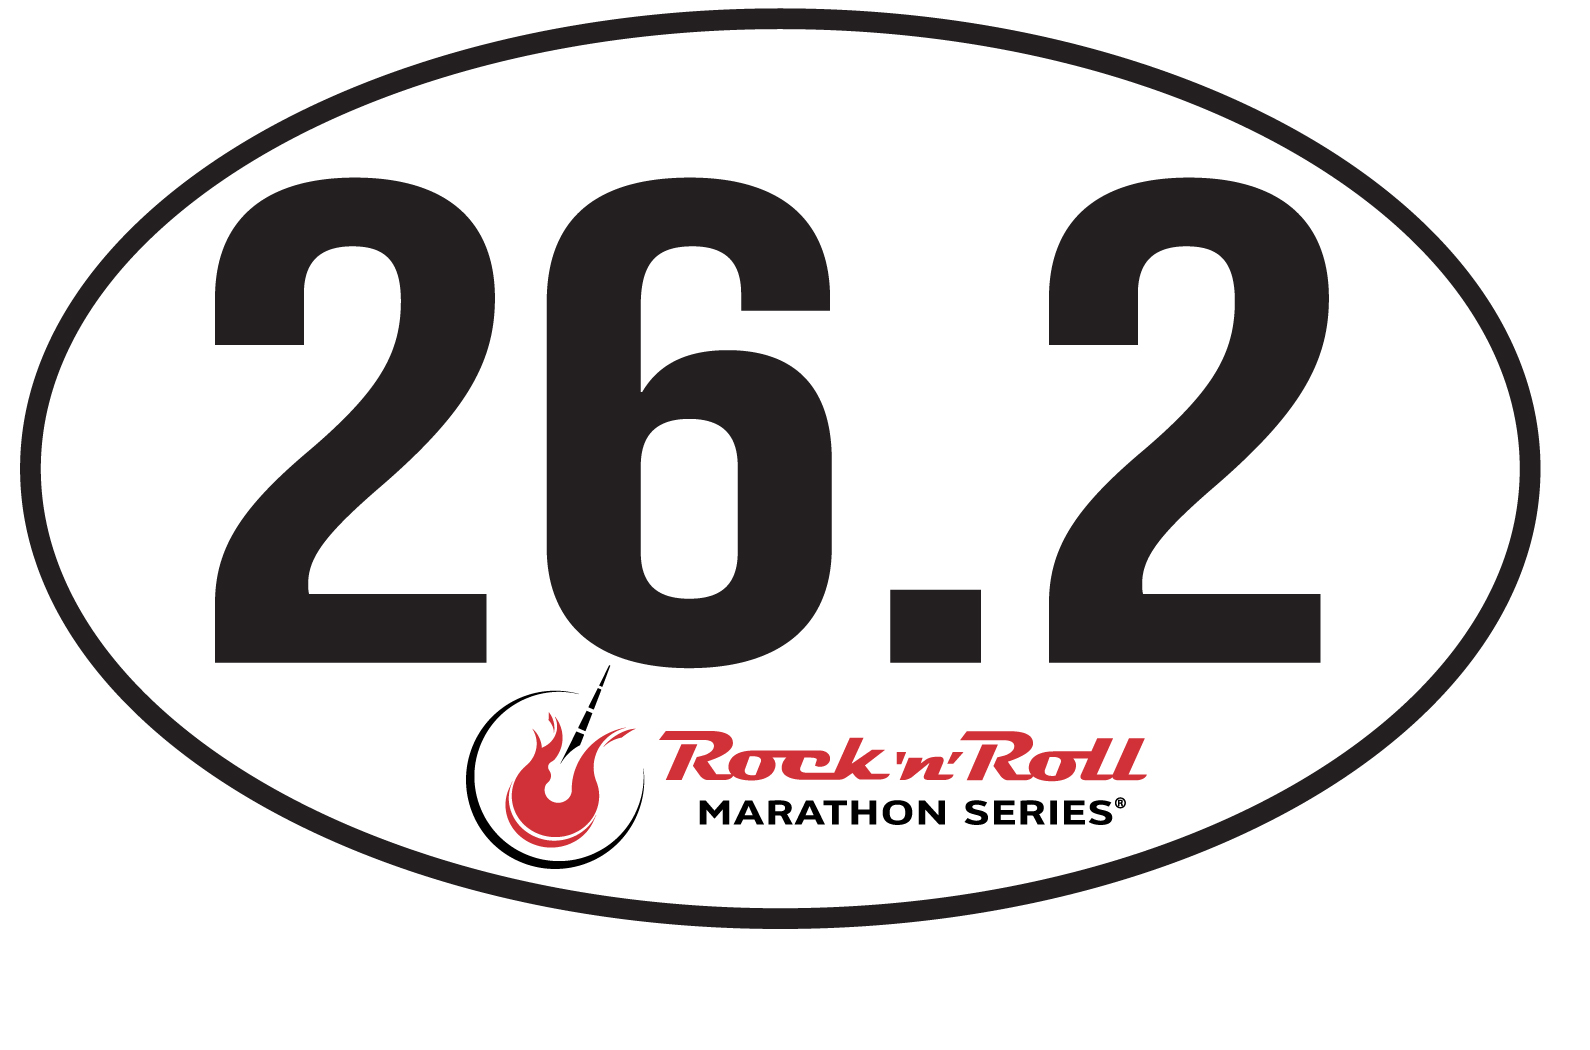 ROCK N ROLL MARATHON SERIES 26.2 STICKER AUTO EMBLEM